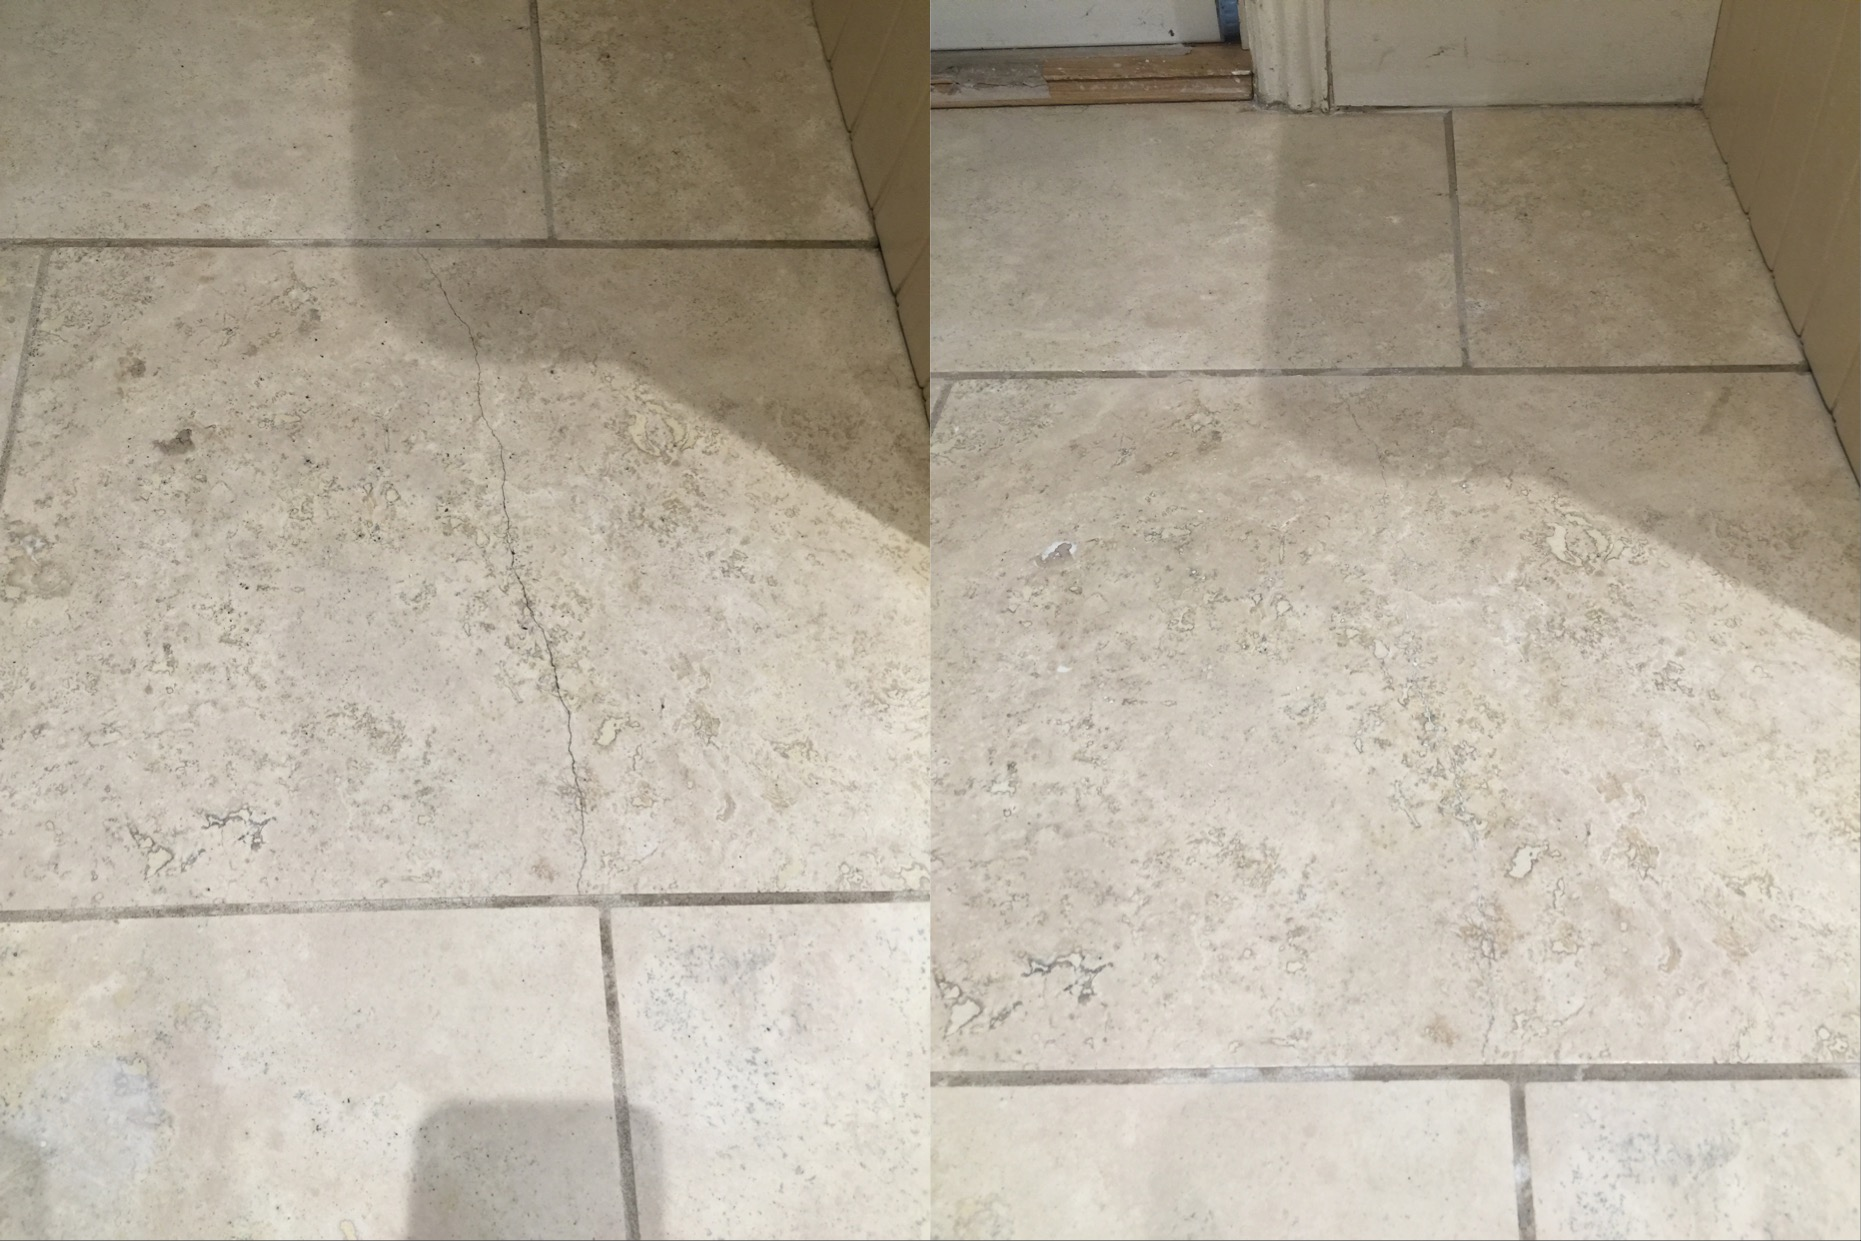 West surrey tile doctor your local tile stone and grout sleaning restoring travertine kitchen tiles travertine kitchen floor cracked tile before and after east byfleet dailygadgetfo Images